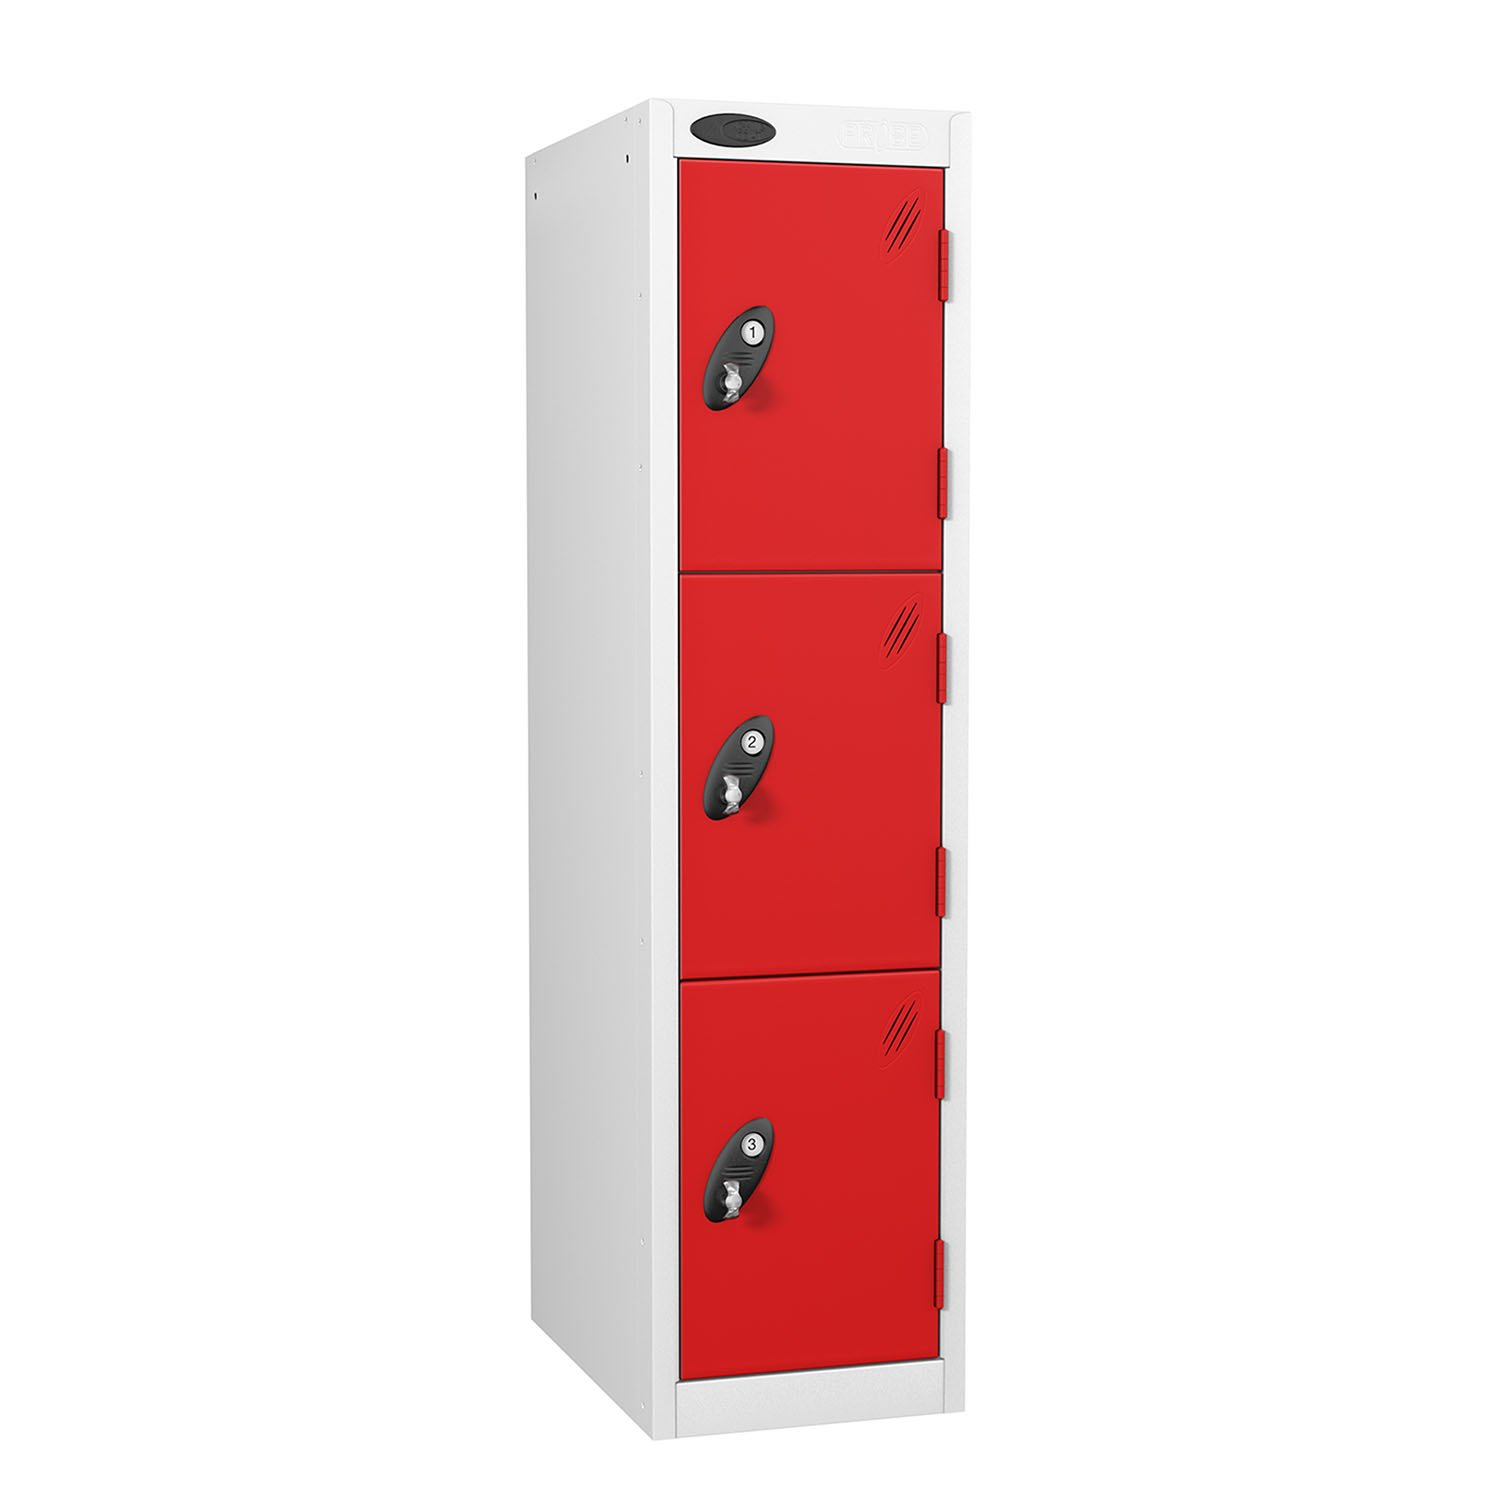 Probe 3 doors low locker in red colour